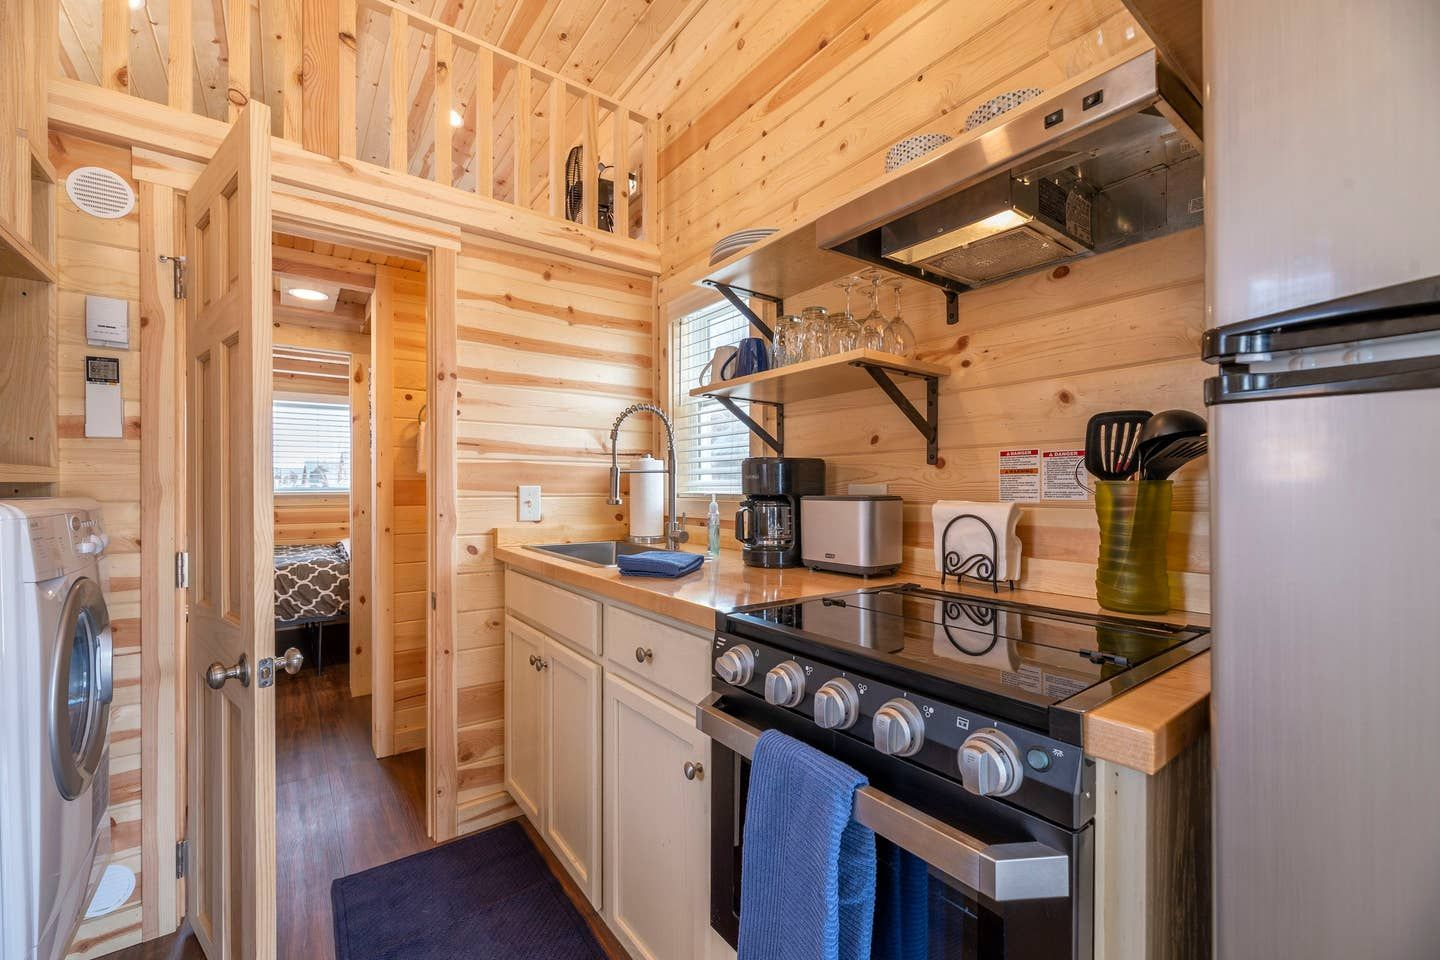 20 Tiny Houses In Colorado You Can Rent On Airbnb In 2020 In 2020 Tiny Houses For Rent Tiny Cottage Tiny House Rentals